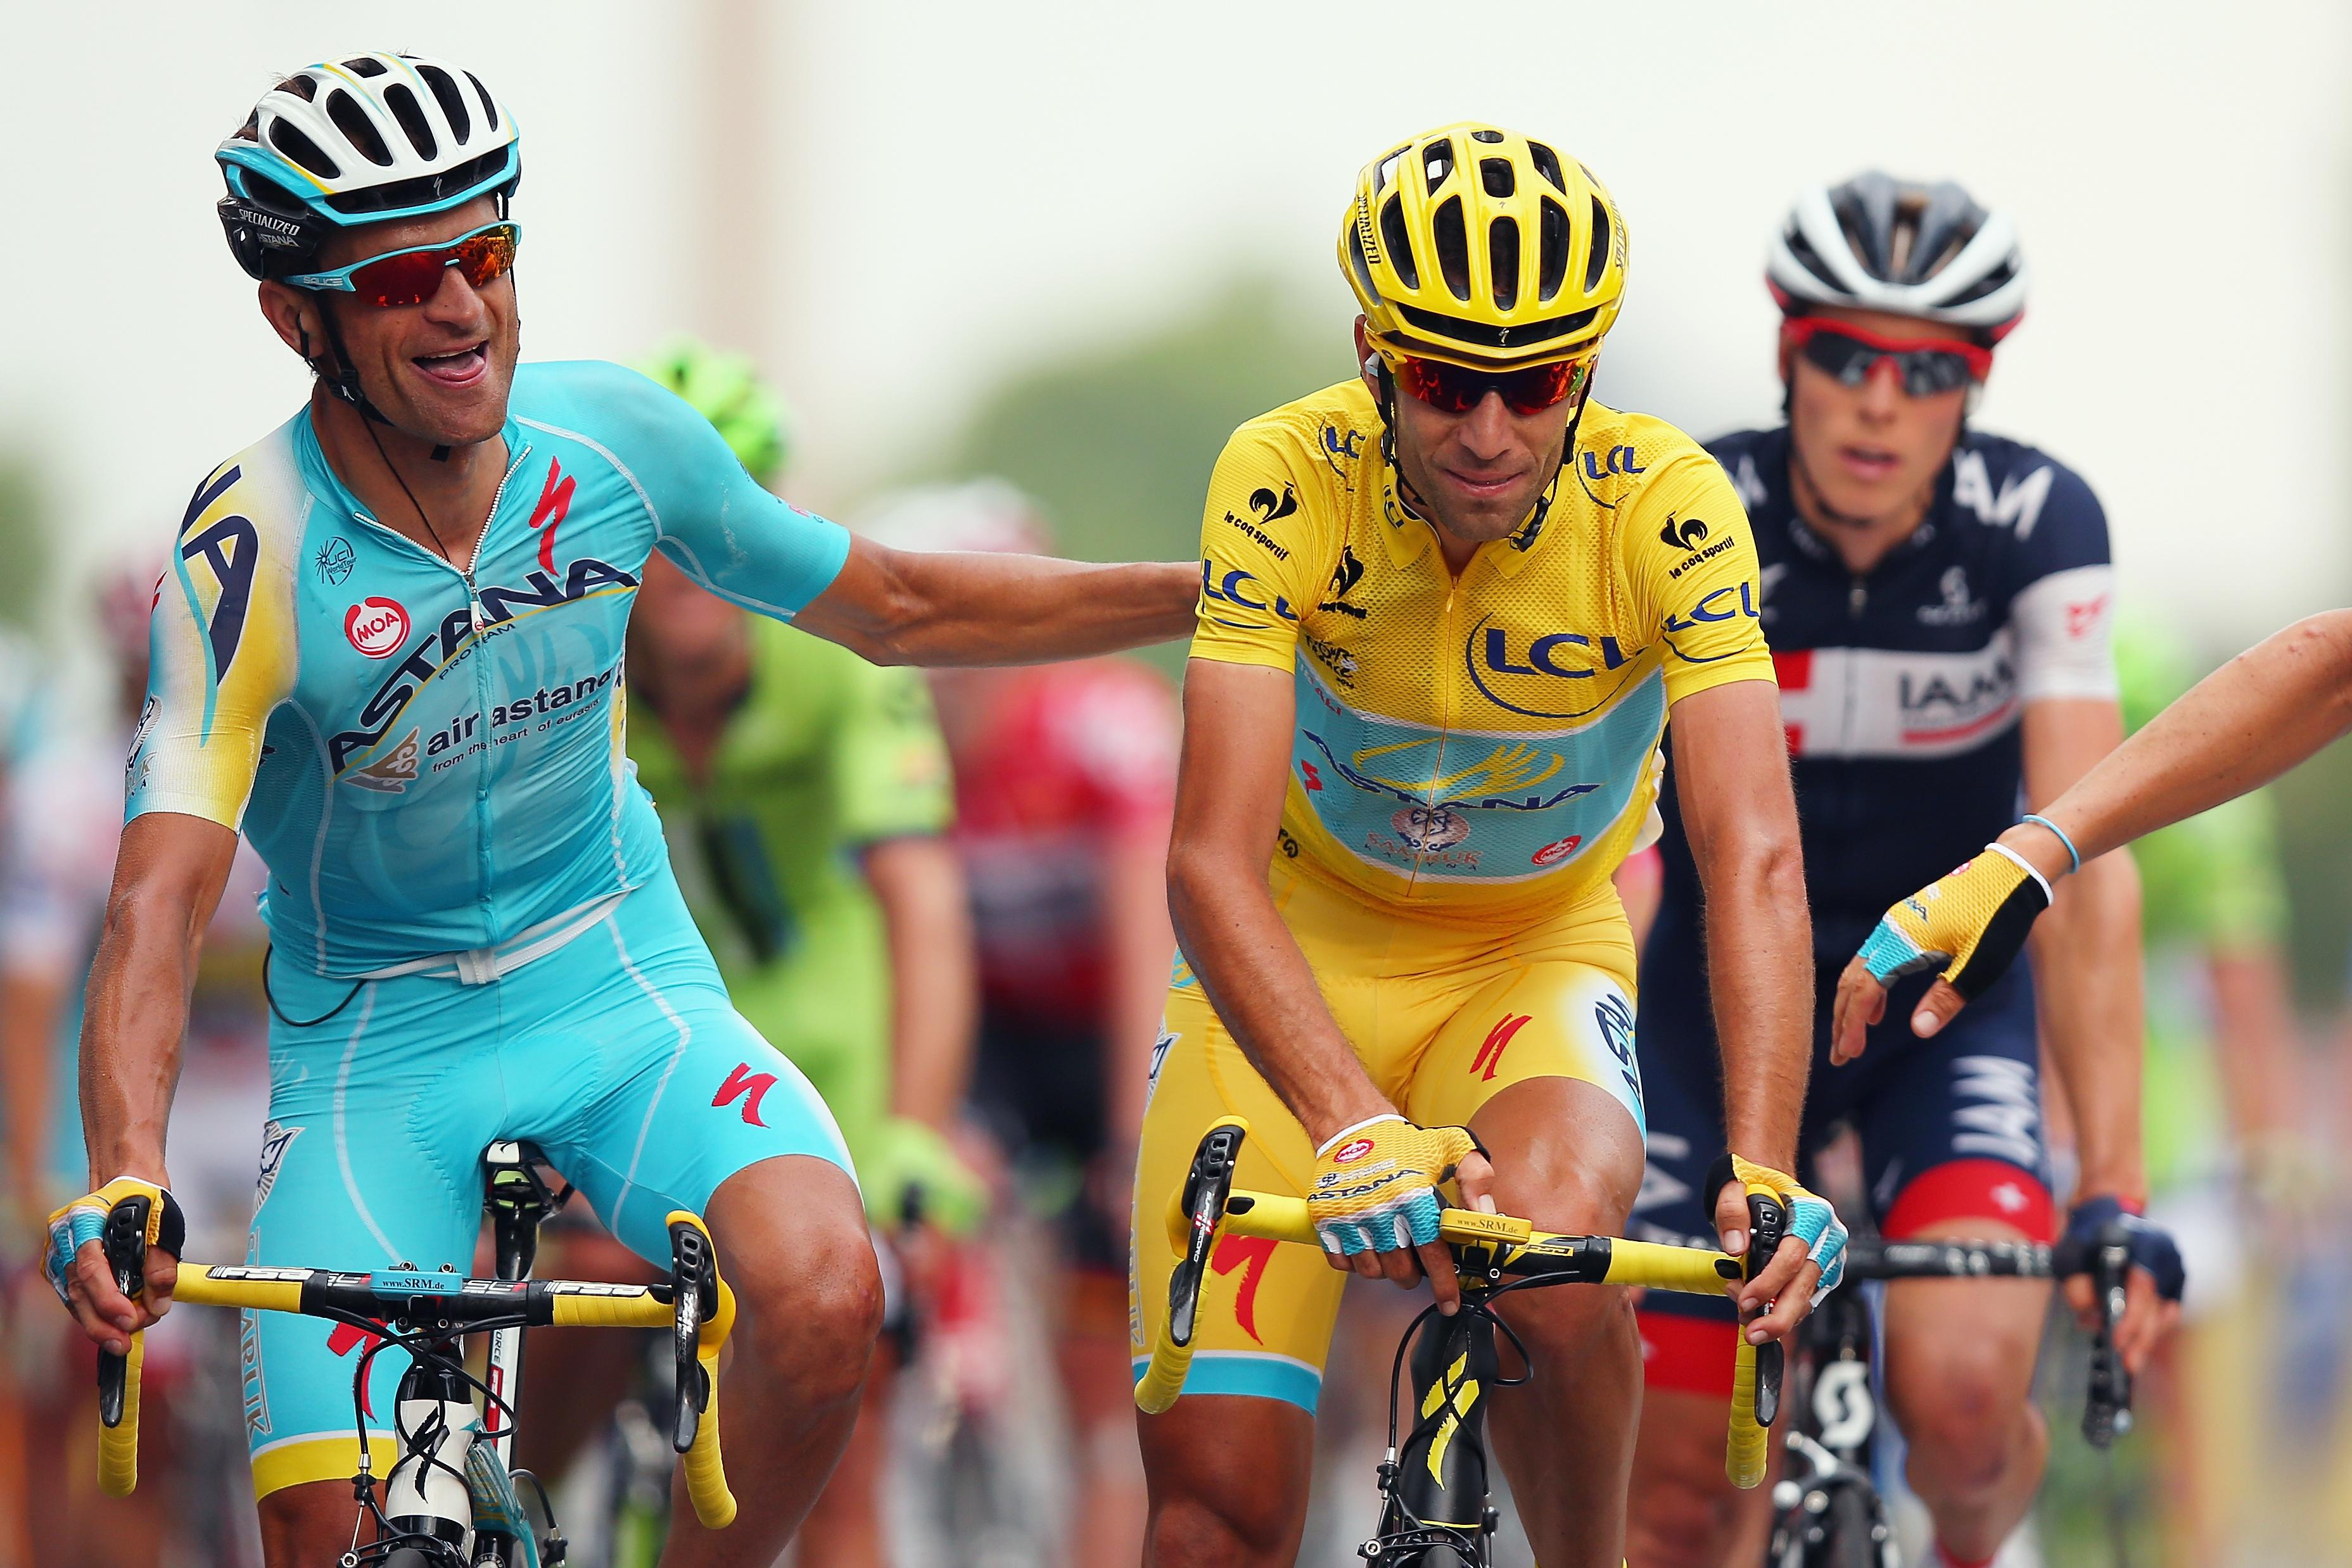 Michele Scarponi with Vincenzo Nibali when his Italian team-mate won the 2014 Tour de France